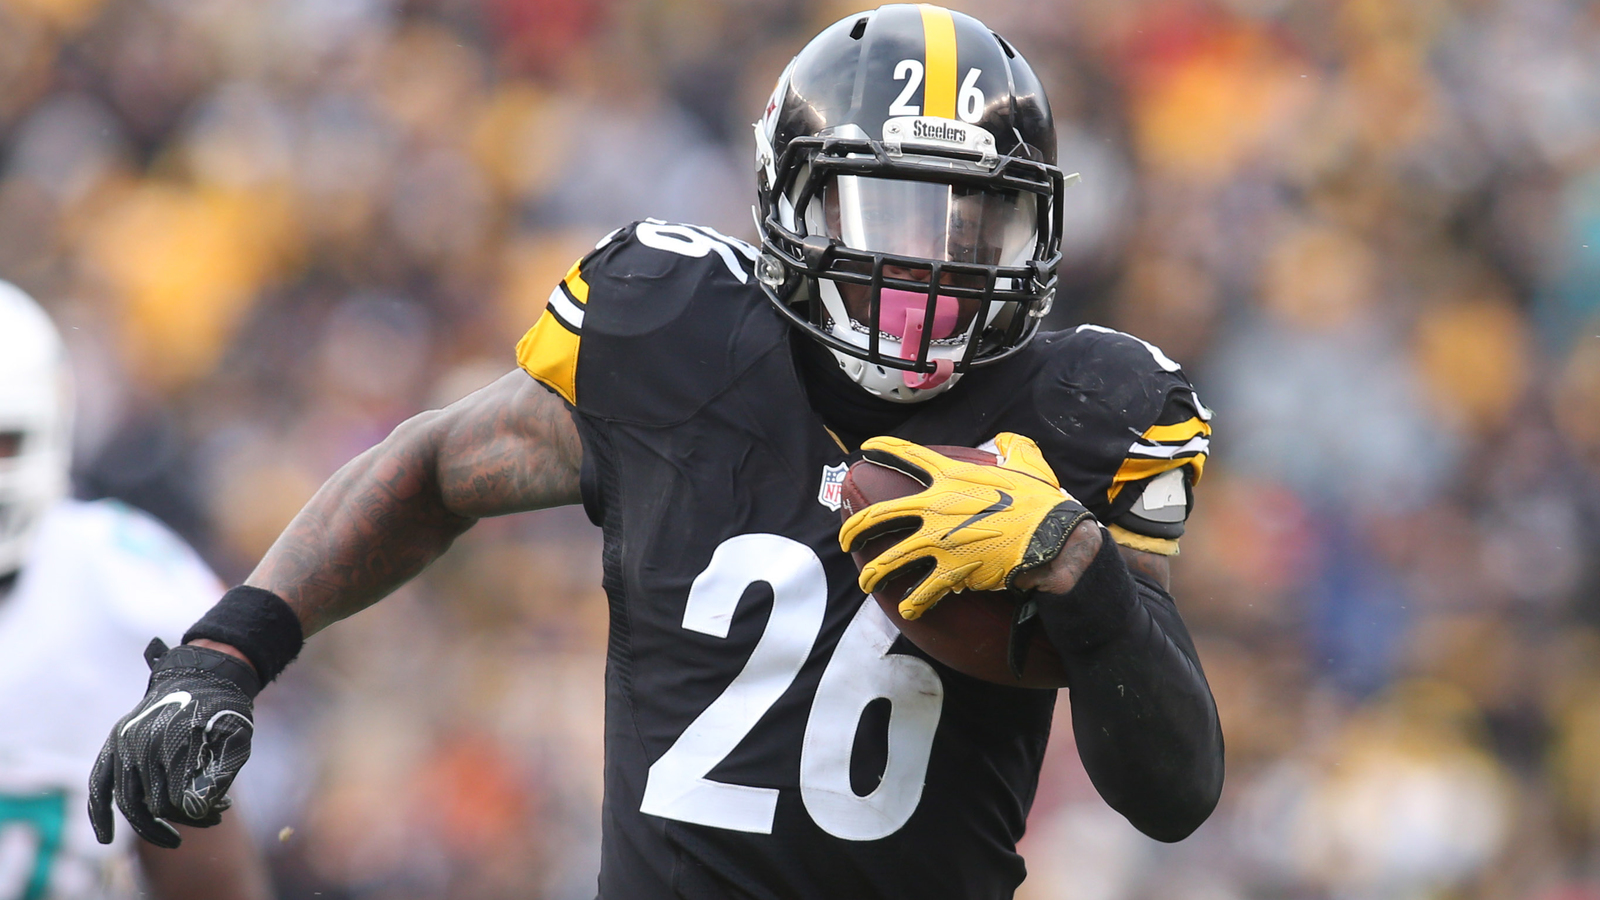 Le'Veon Bell makes appearance at Steelers' facility